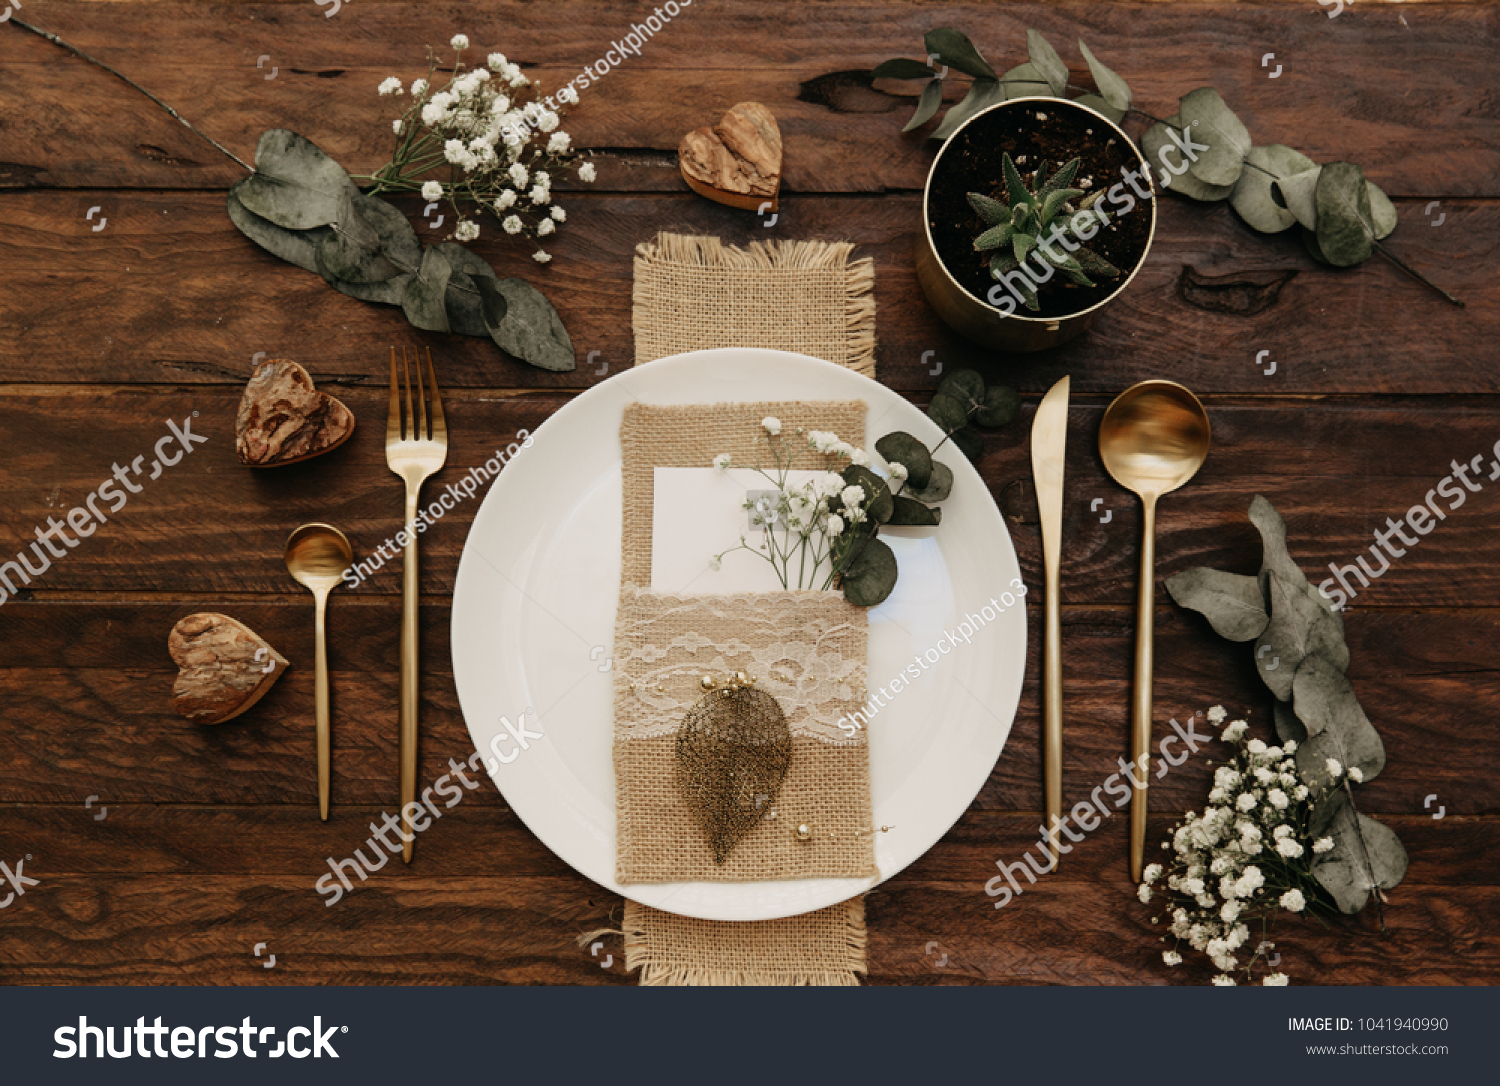 Rustic Wedding Table Set Vintage Dining | Holidays Stock Image 1041940990